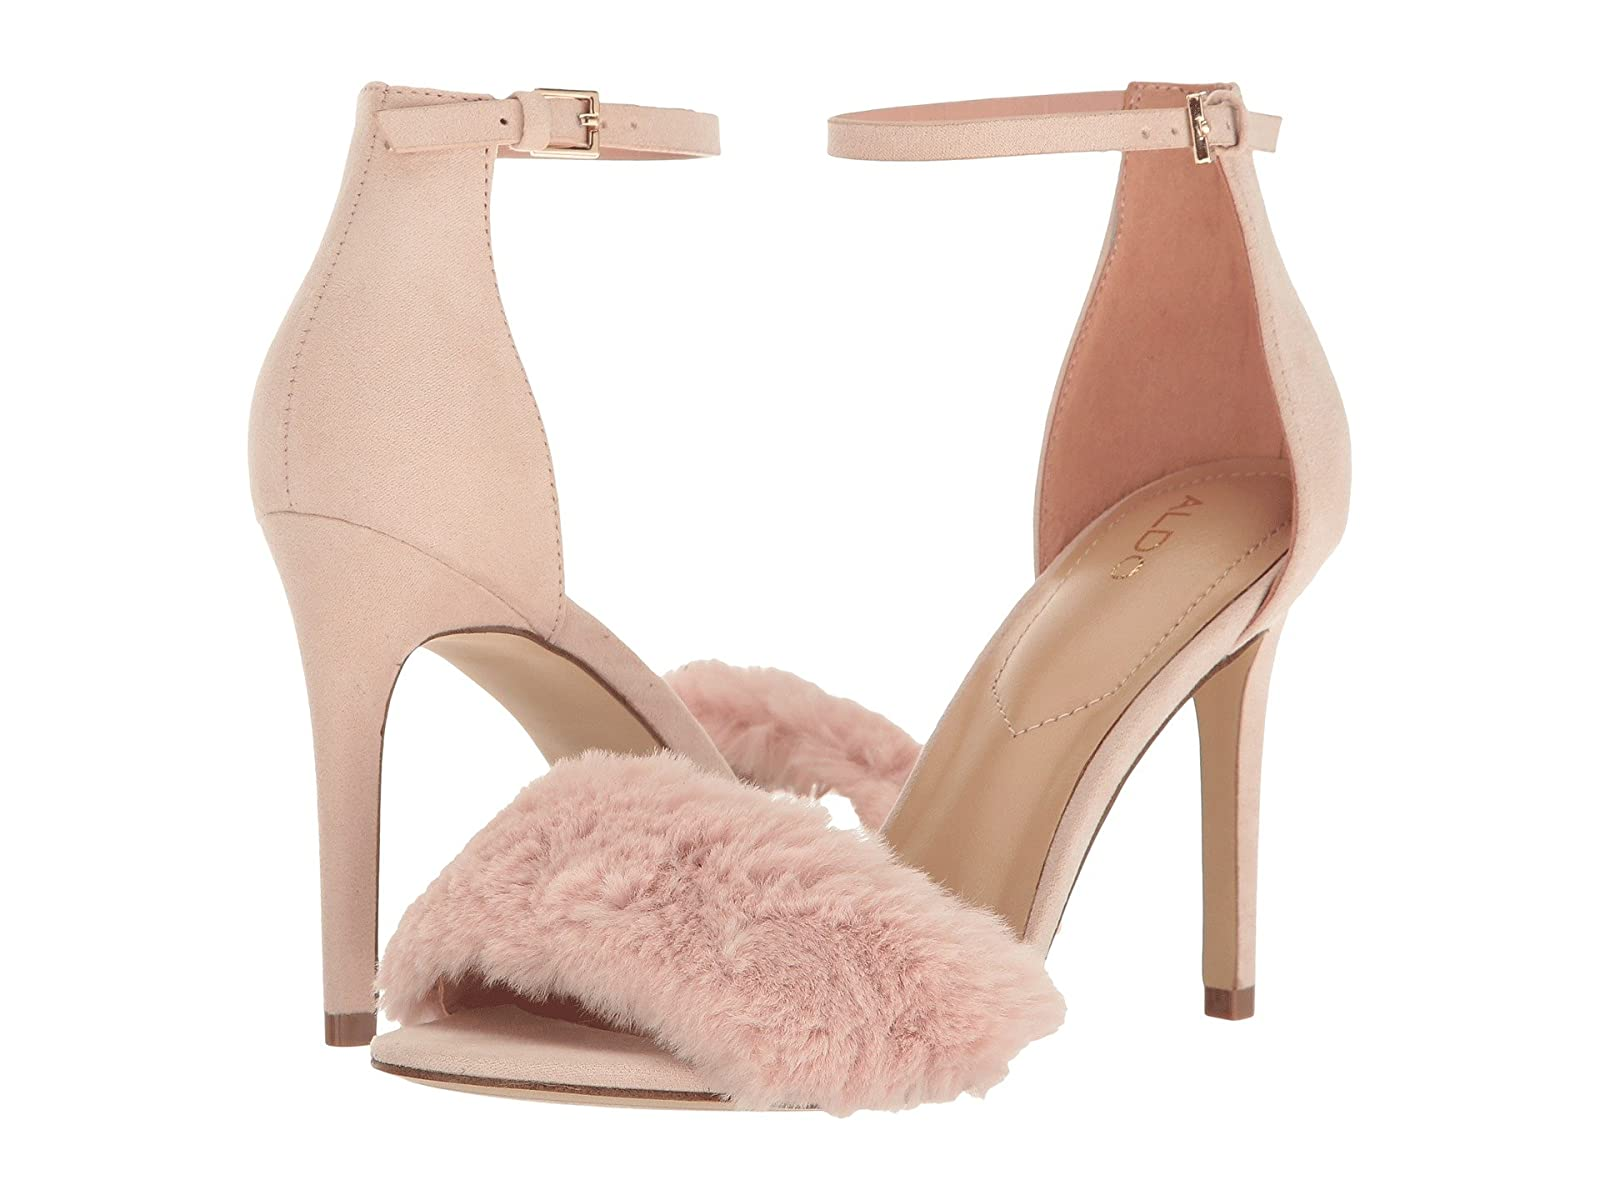 ALDO LalisaCheap and distinctive eye-catching shoes